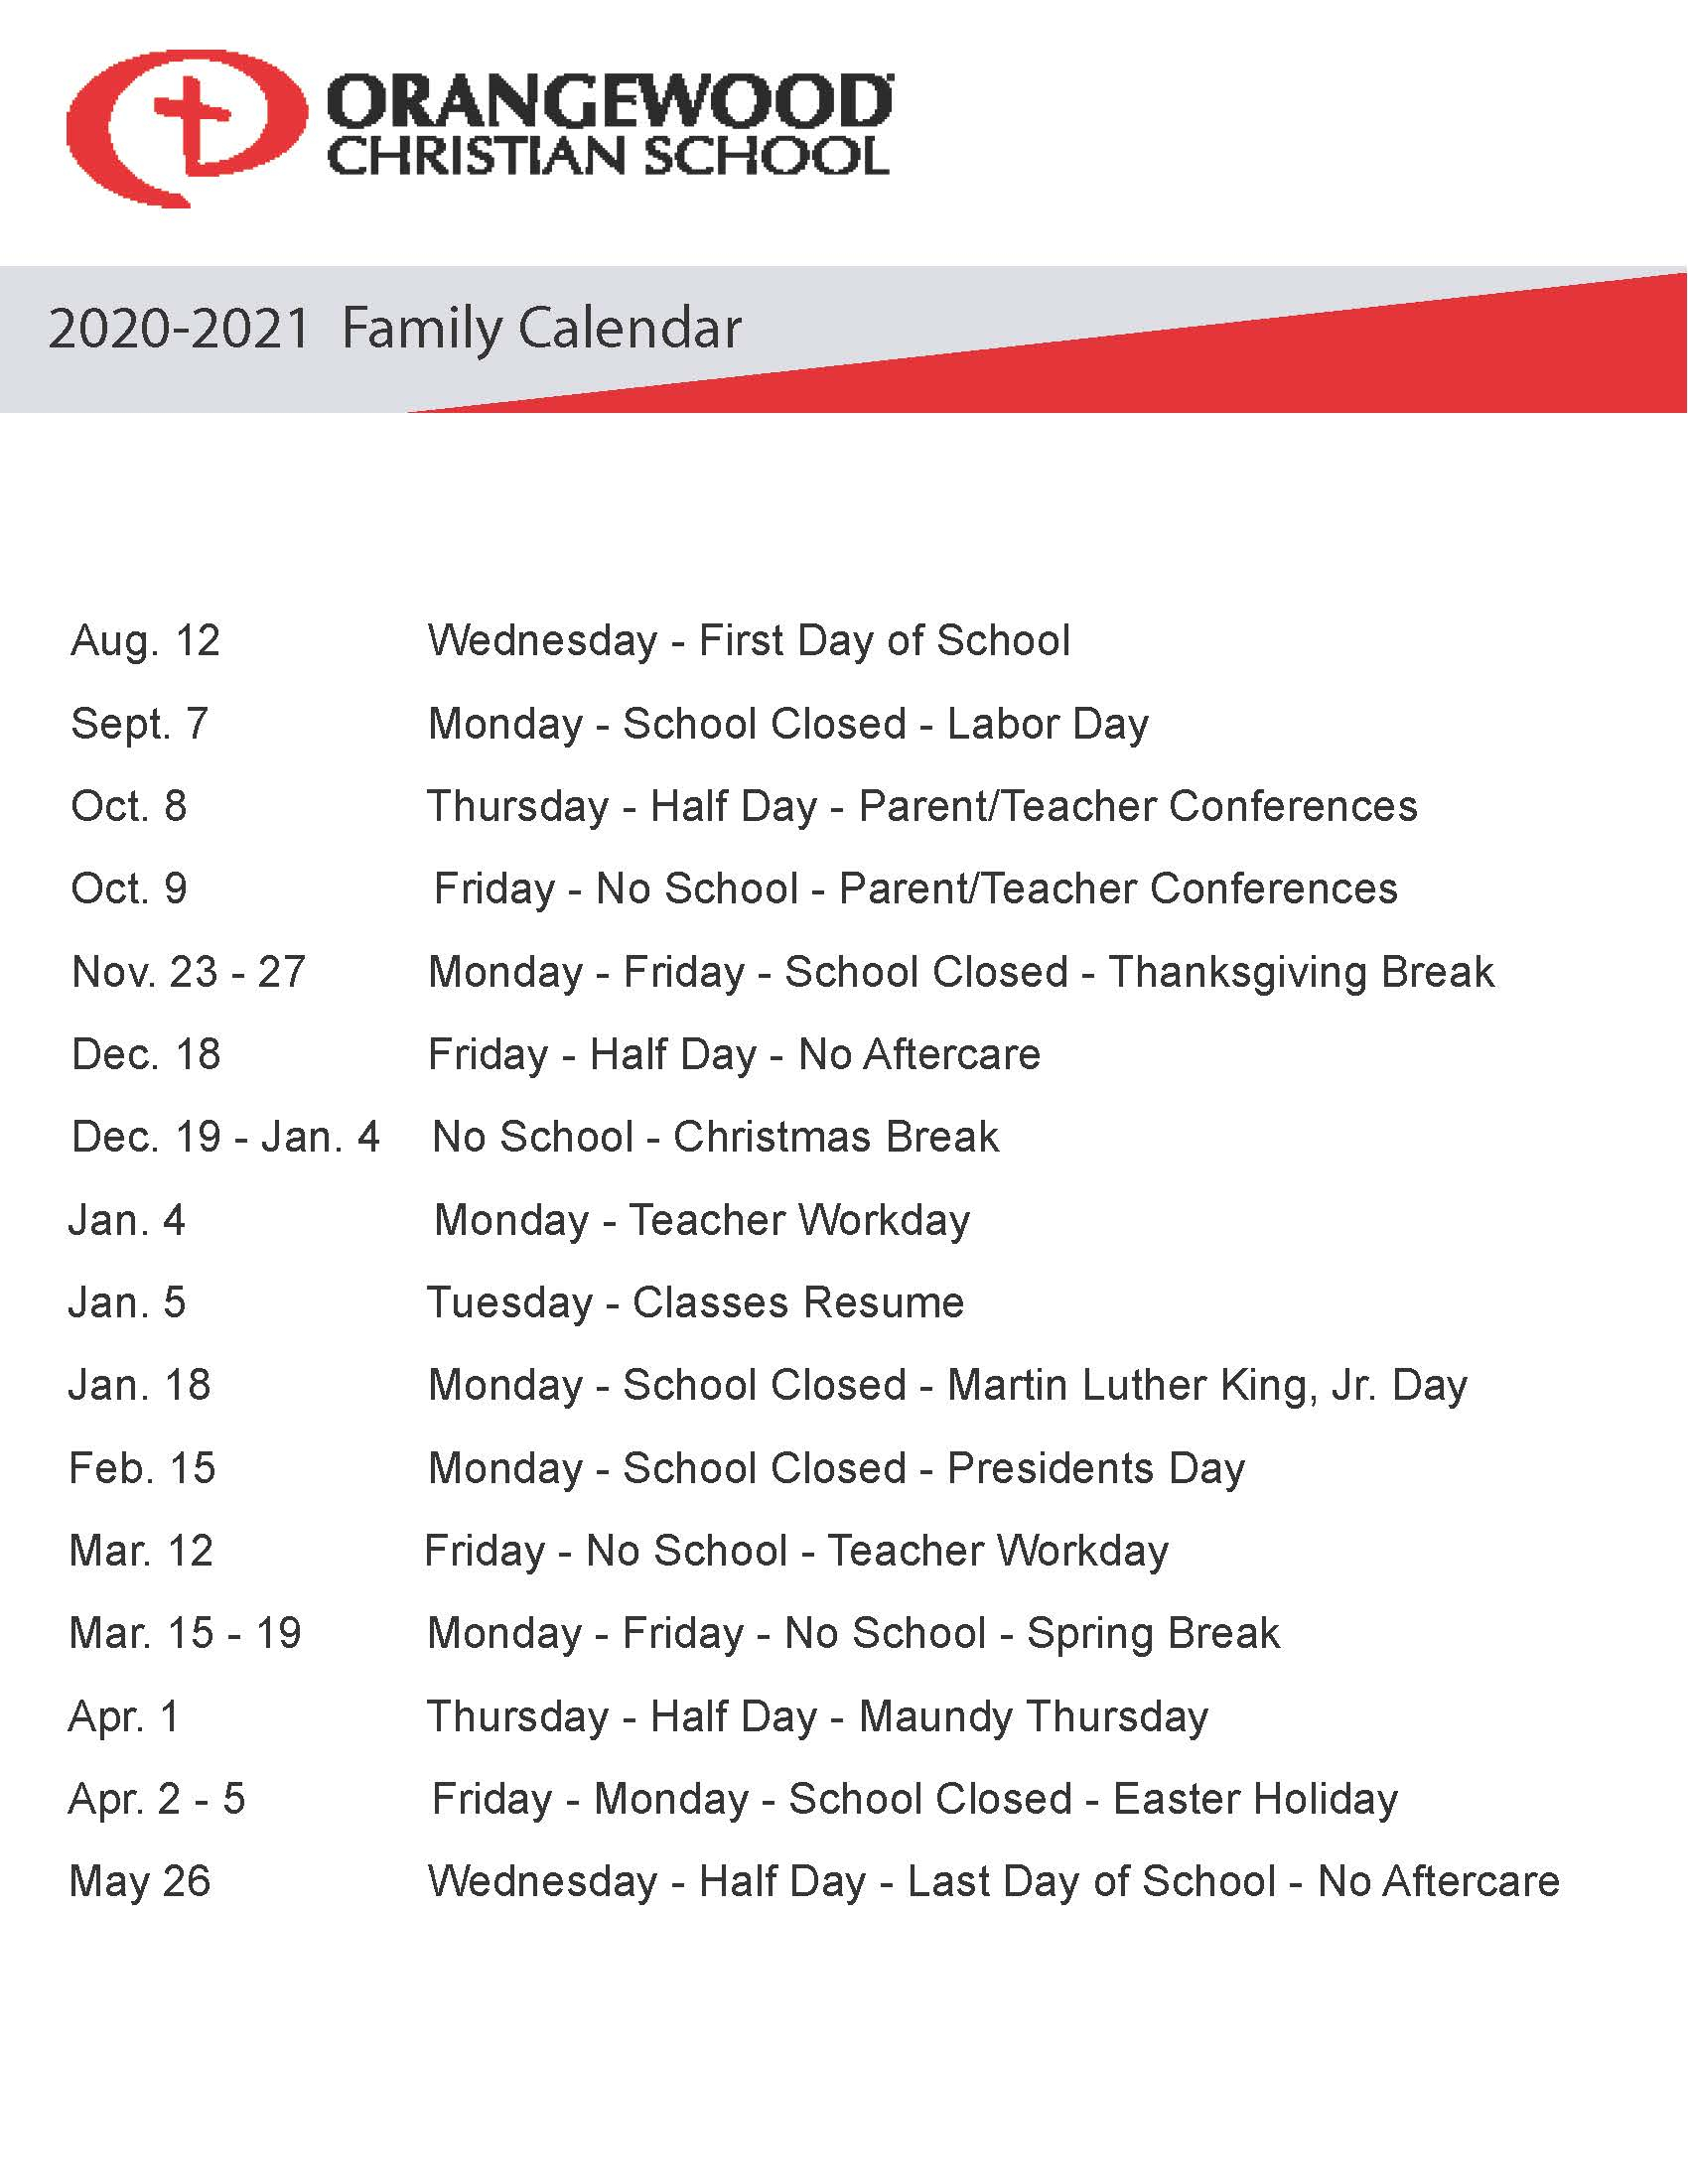 2020 2021 Family Calendar - Orangewood Christian School Intended For Full Sail University Spring Calendar 202 2021